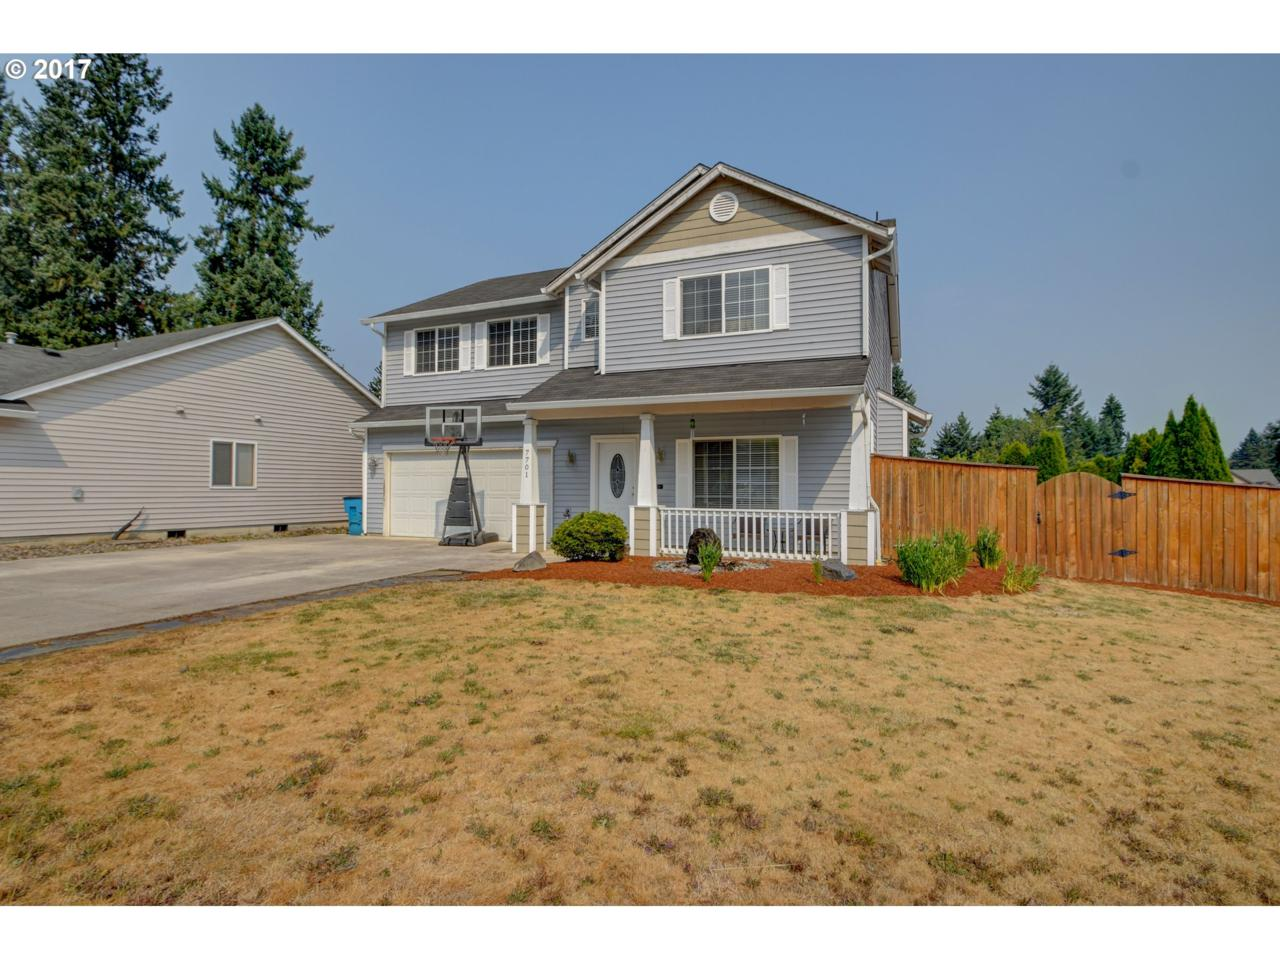 7701 NE 86TH Ave, Vancouver, WA 98662 (MLS #17415325) :: The Dale Chumbley Group